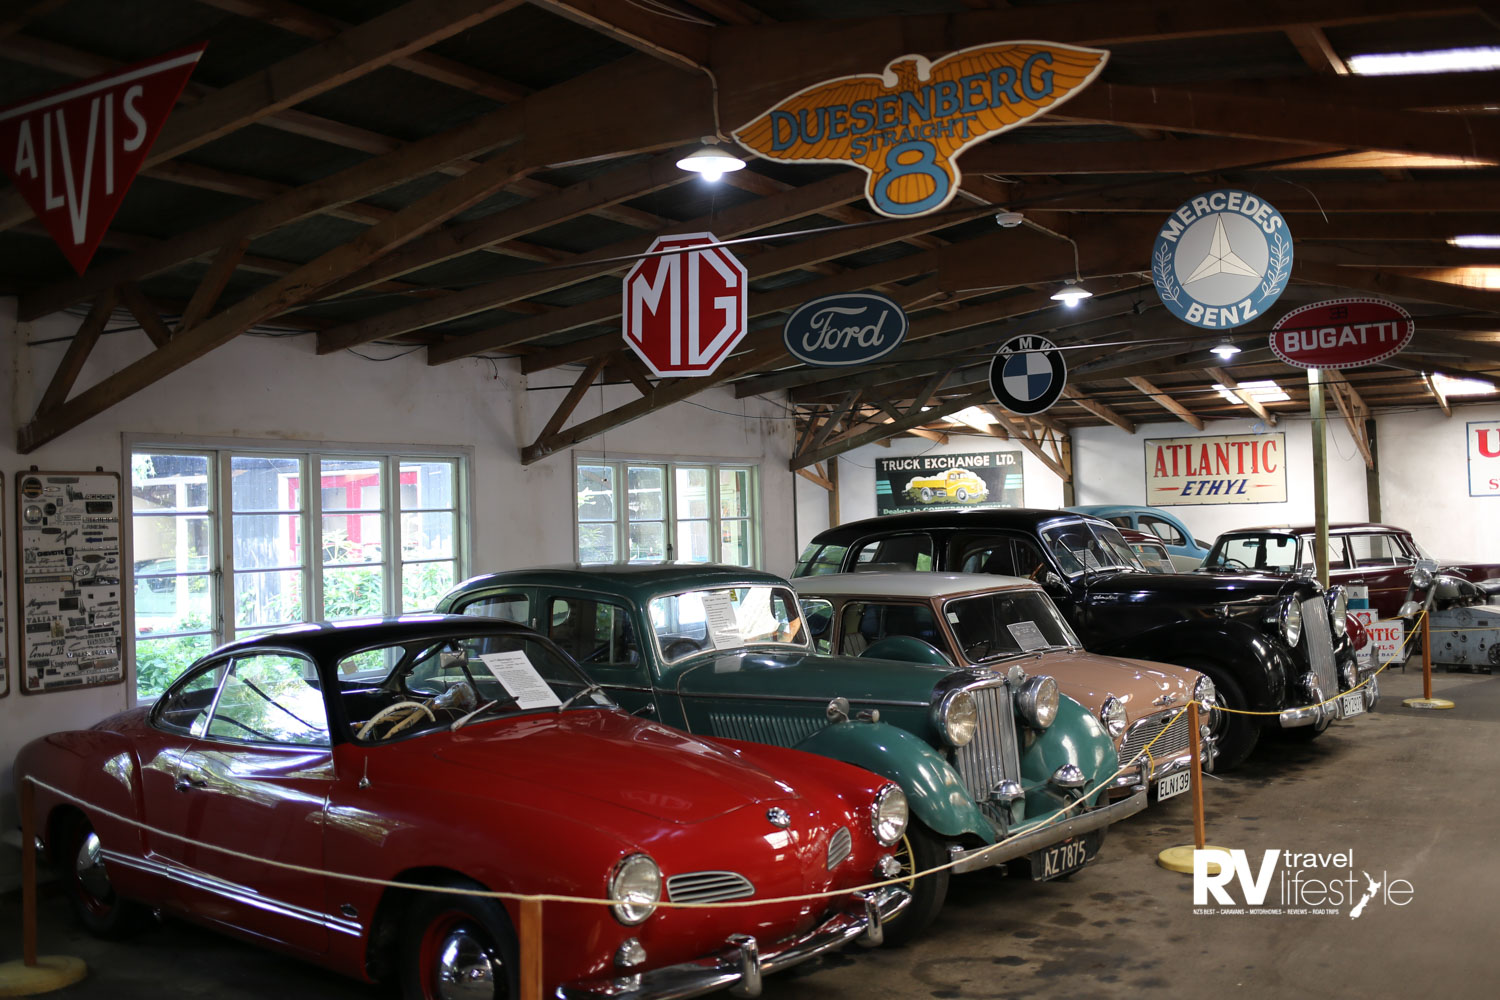 There are more than 150 motor vehicles in the collection